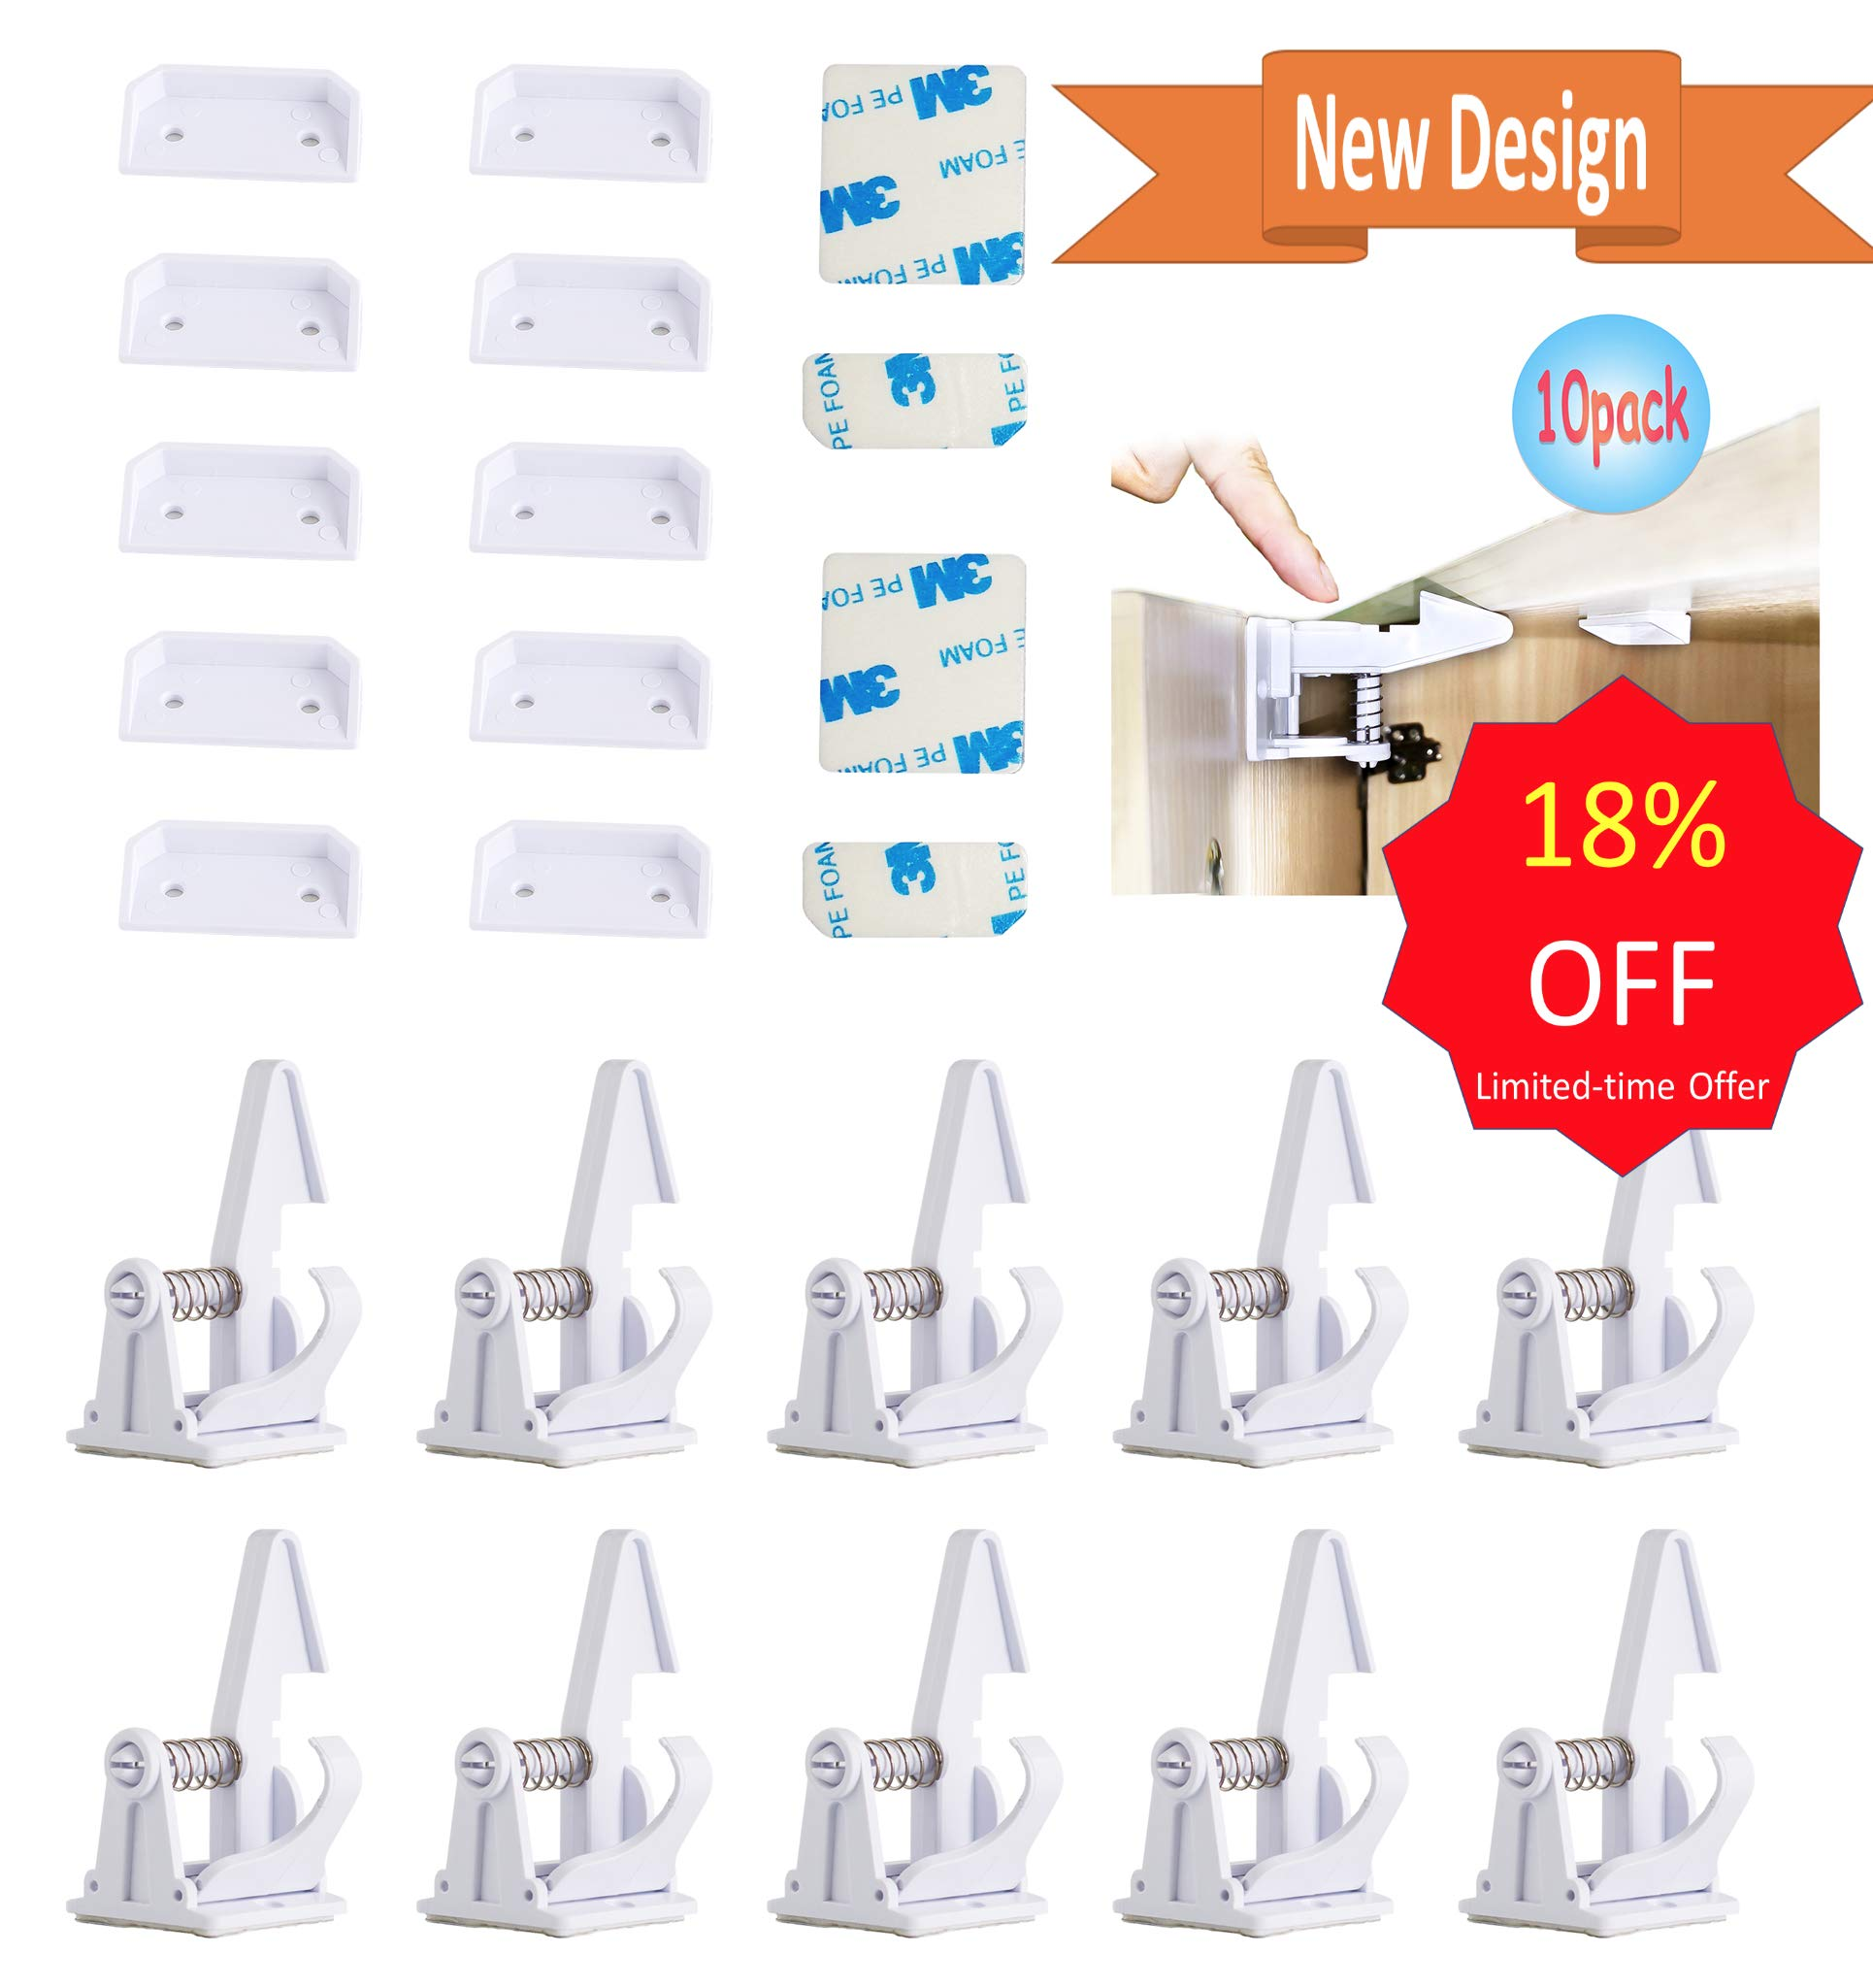 Baby Proofing Cabinet Locks Child Safety Latches Invisible Design 3M Adhesive No Tooling, Drilling: 10 Pack White Drawer Lock for Baby Safety with an Anti-lock, 2 more Sets of 3M Adhesive by Chakrabit by Chakrabit (Image #1)